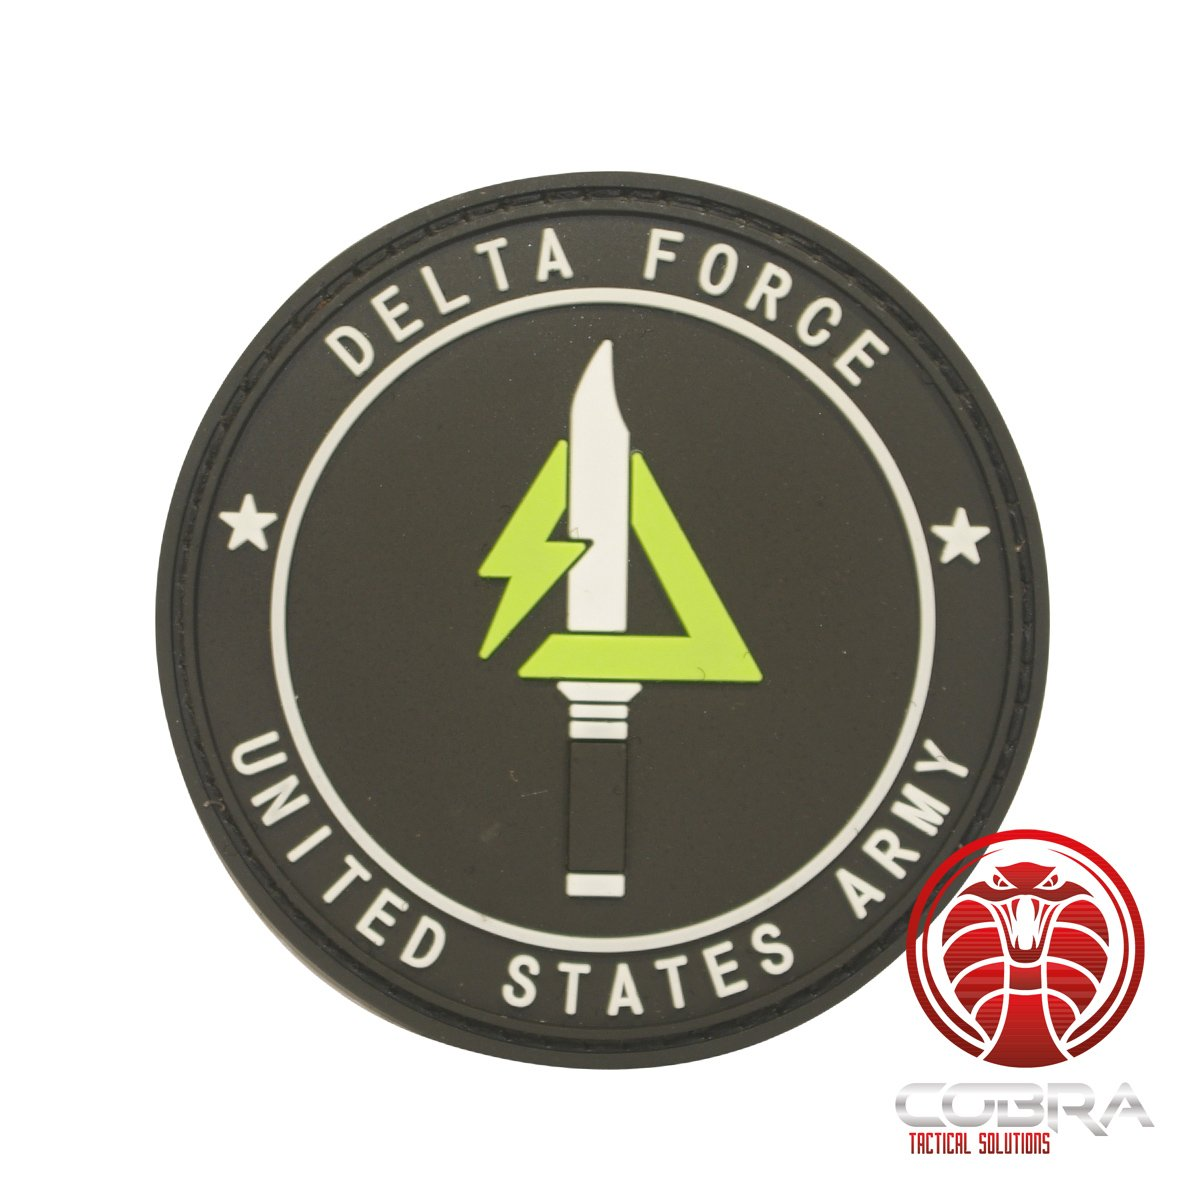 Cobra Tactical Solutions Delta Force United States Army 3D PVC Parche Militar tactico Velcro Airsoft